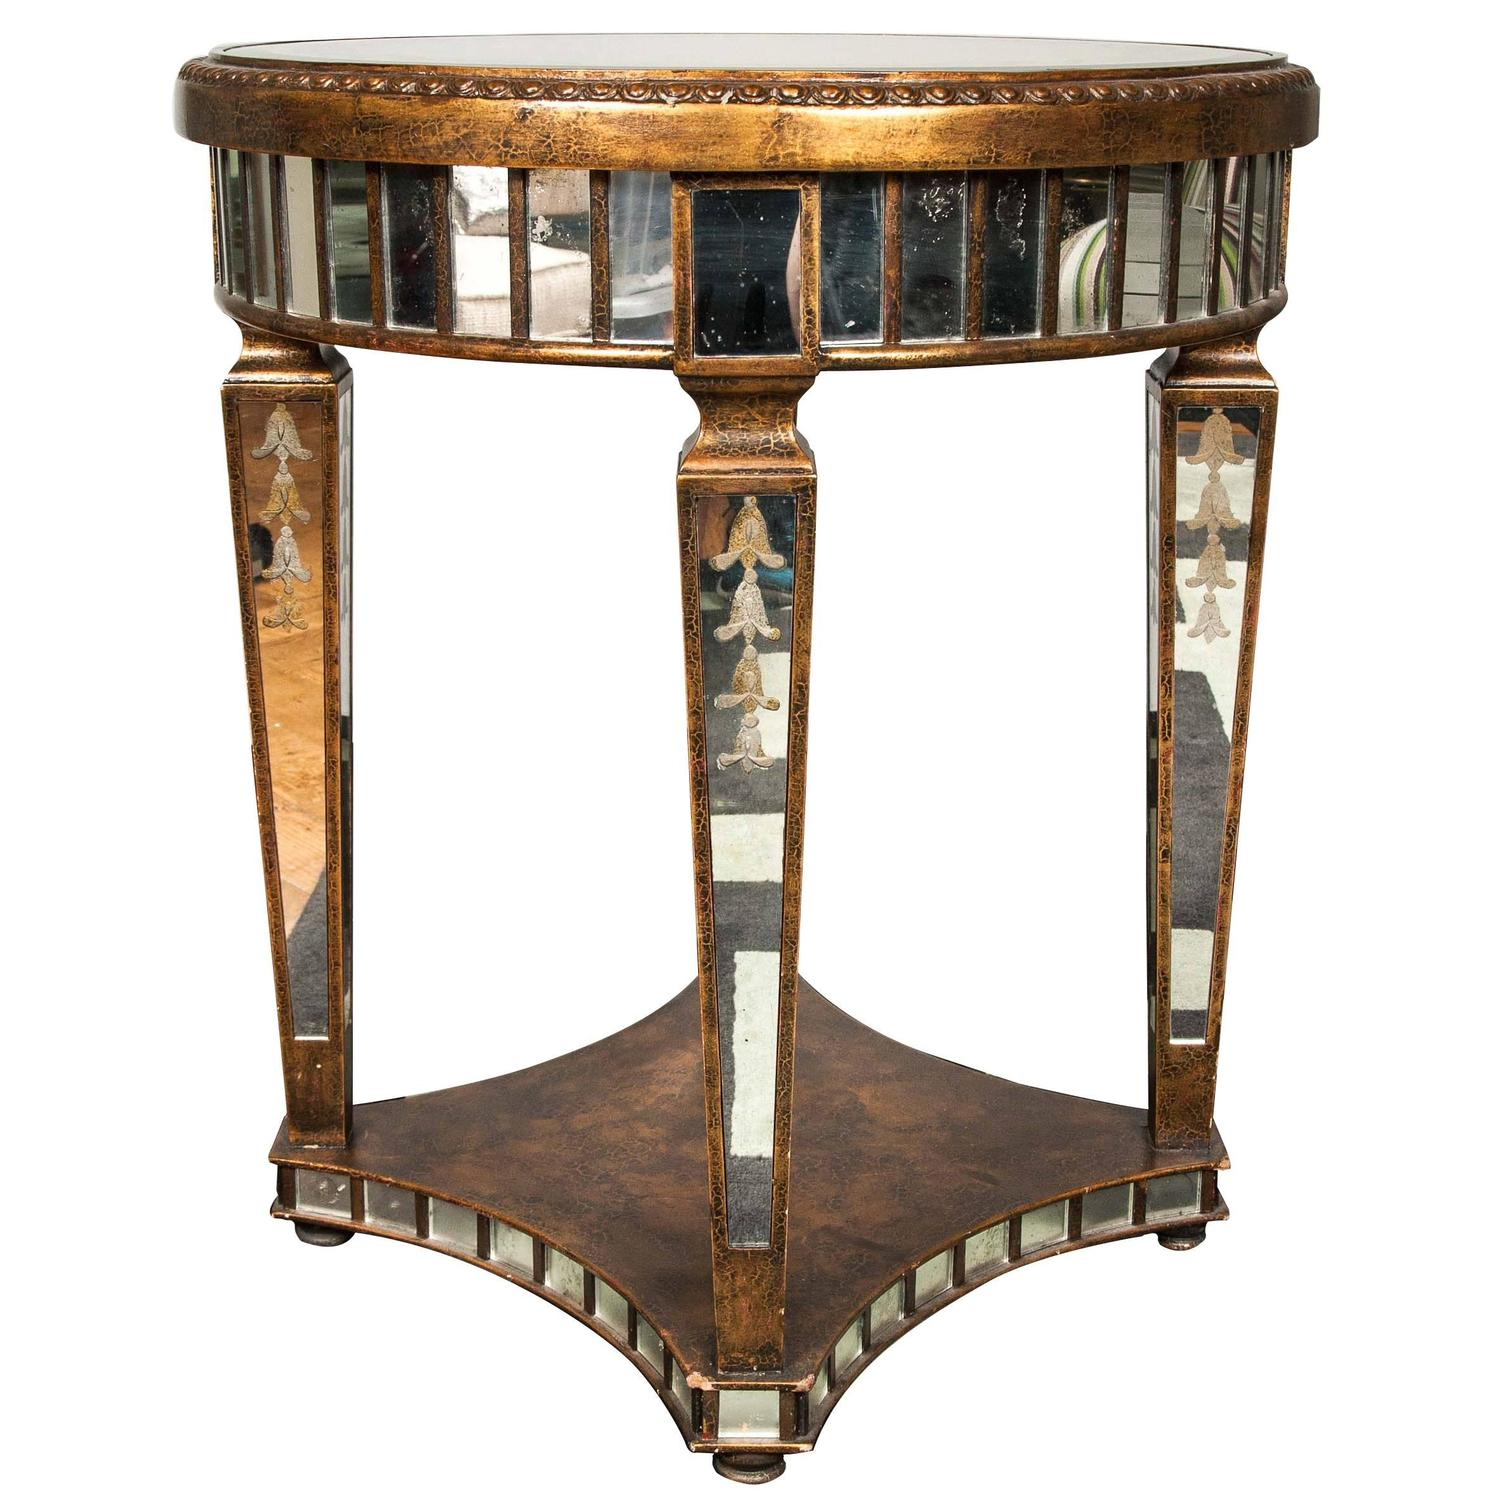 Ornate Etched Round Mirrored Table With Tapered Legs For